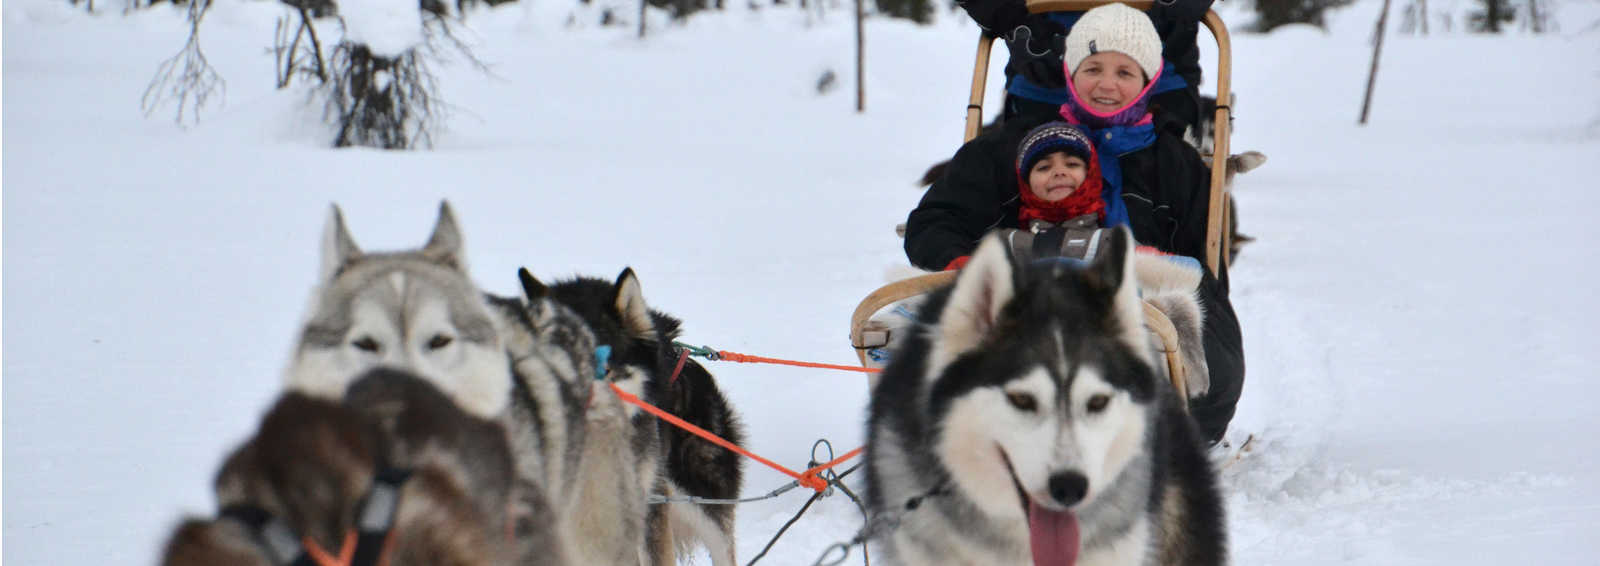 Family ride on a dogsled, Finland